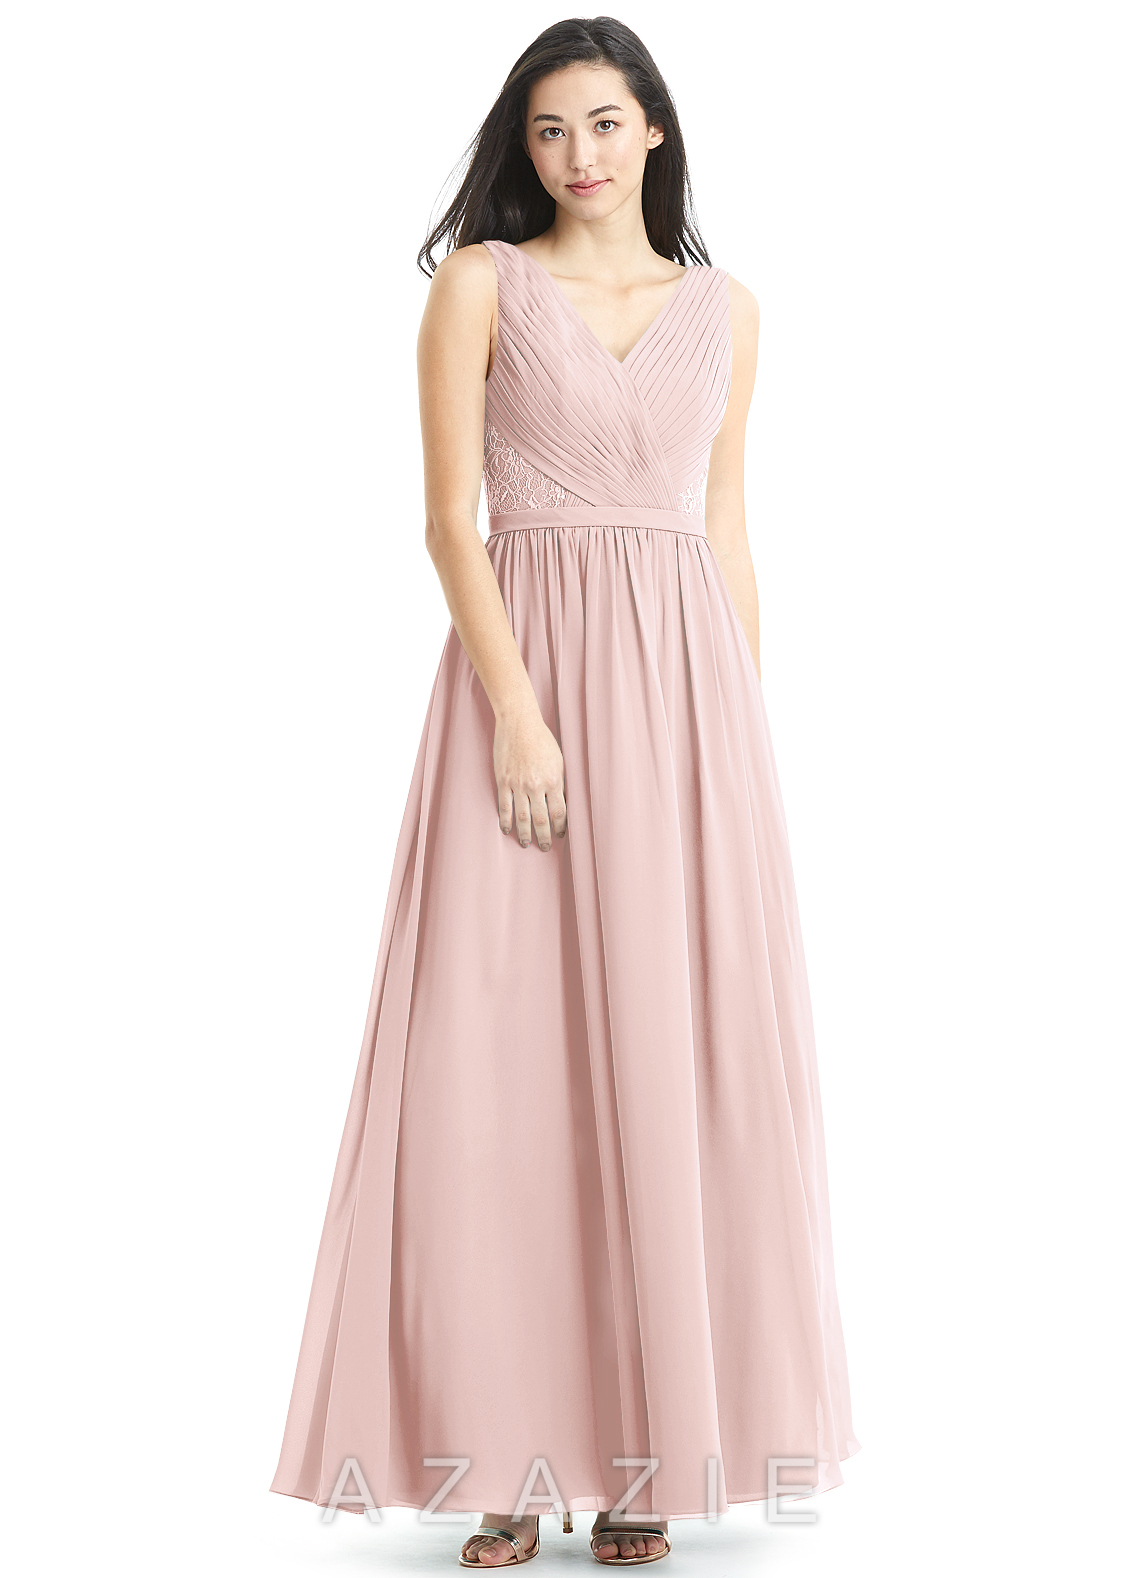 Azazie Keira Bridesmaid Dress | Azazie